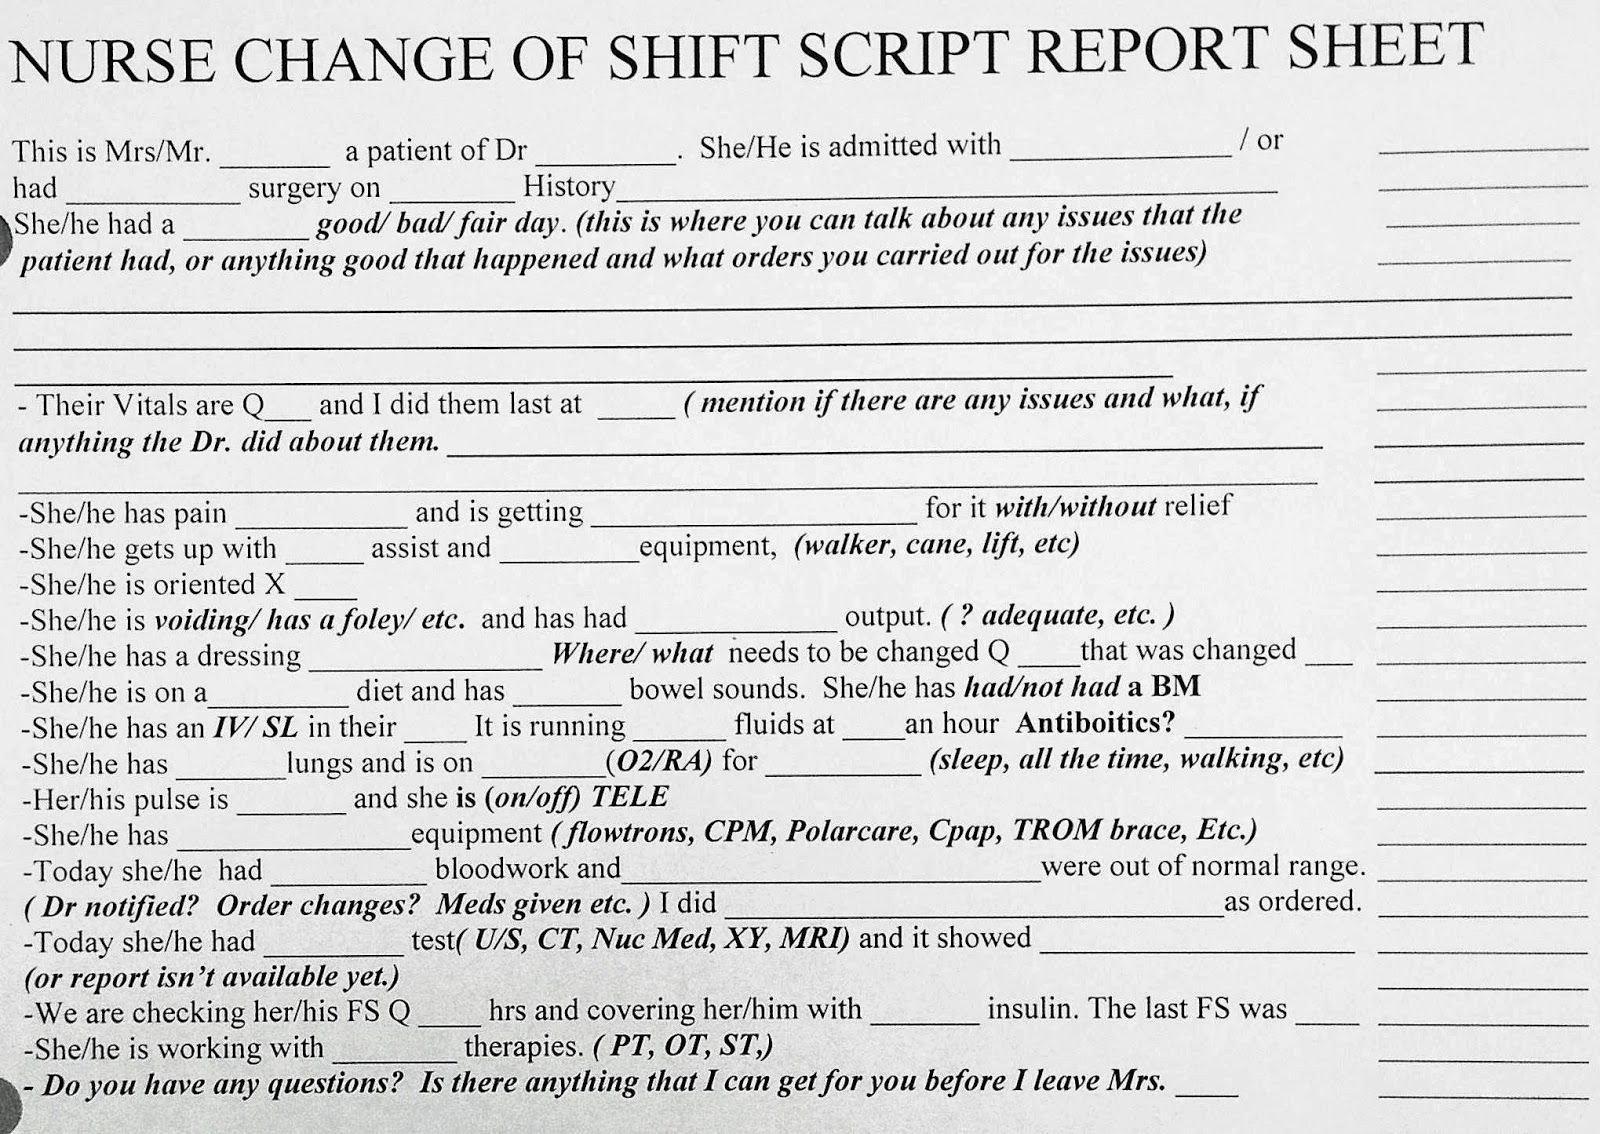 Bedside Shift Report Template Awesome New Grad or Experienced Nurse Change Of Shift